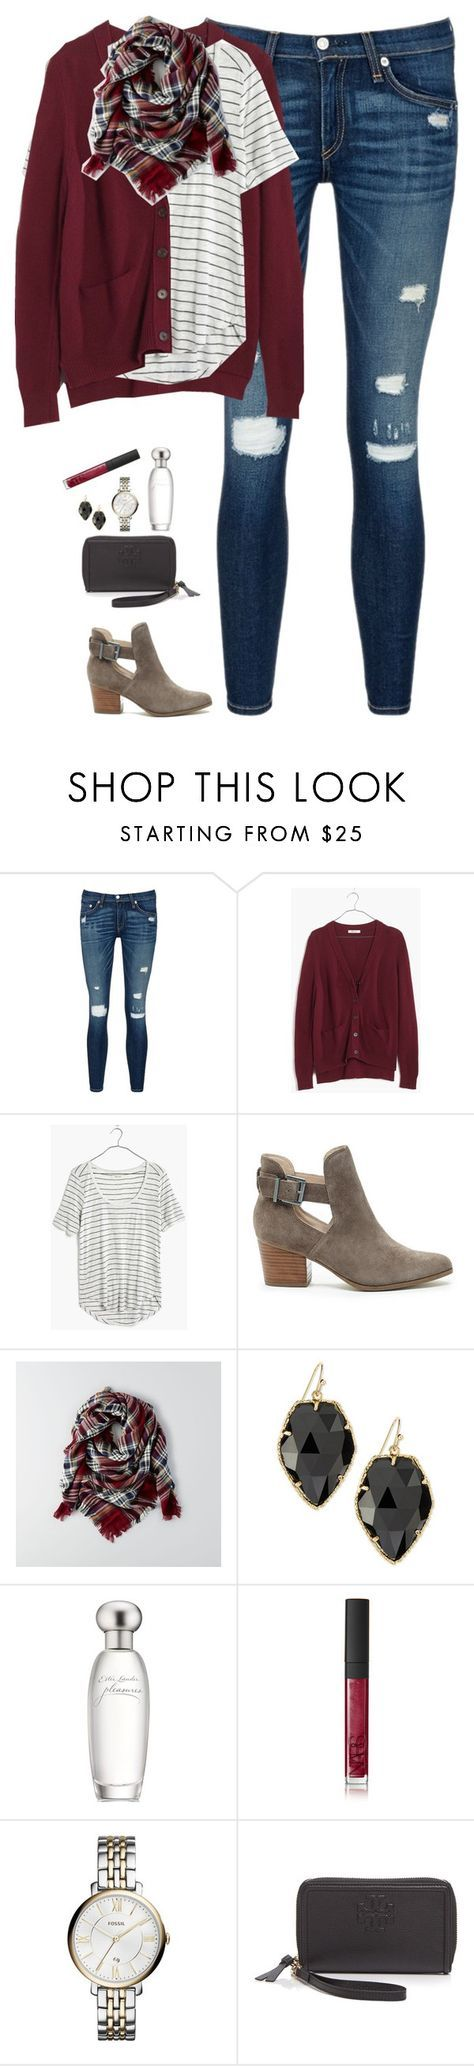 """""""Burgundy cardigan, plaid scarf & striped tee"""" by steffiestaffie ❤ liked on Polyvore featuring rag & bone/JEAN, Madewell, Sole Society, American Eagle Outfitters, Kendra Scott, Estée Lauder, NARS Cosmetics, FOSSIL and Tory Burch"""